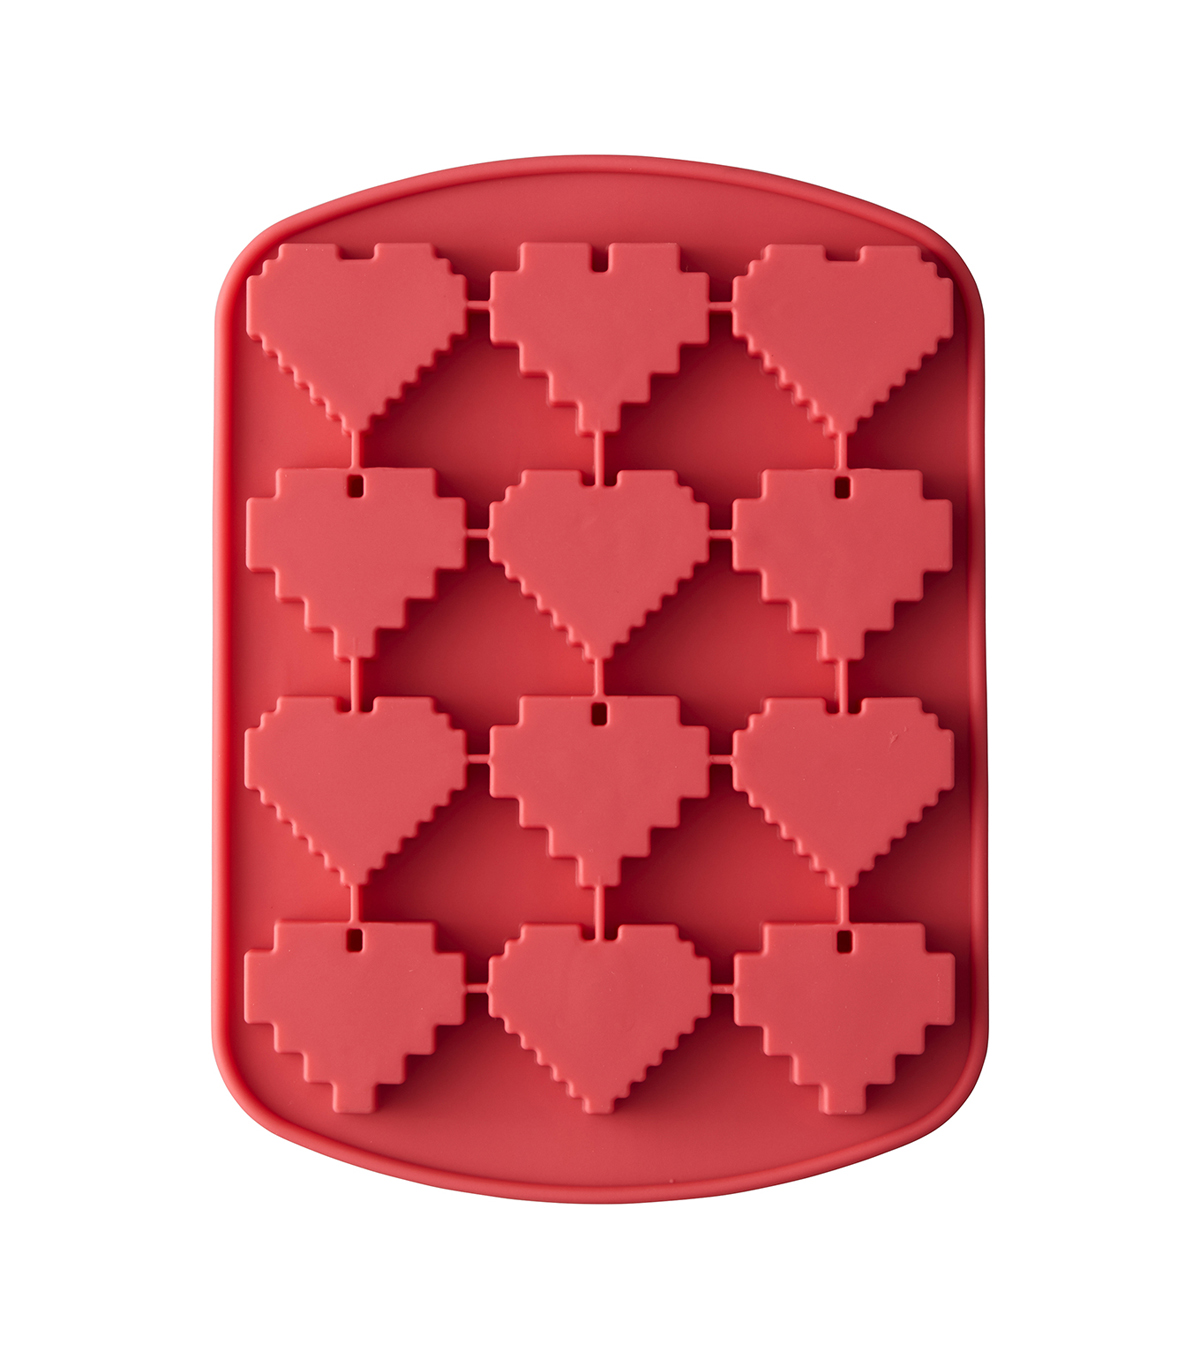 Rosanna Pansino By Wilton 12 Cavity Silicone Heart Candy Mold